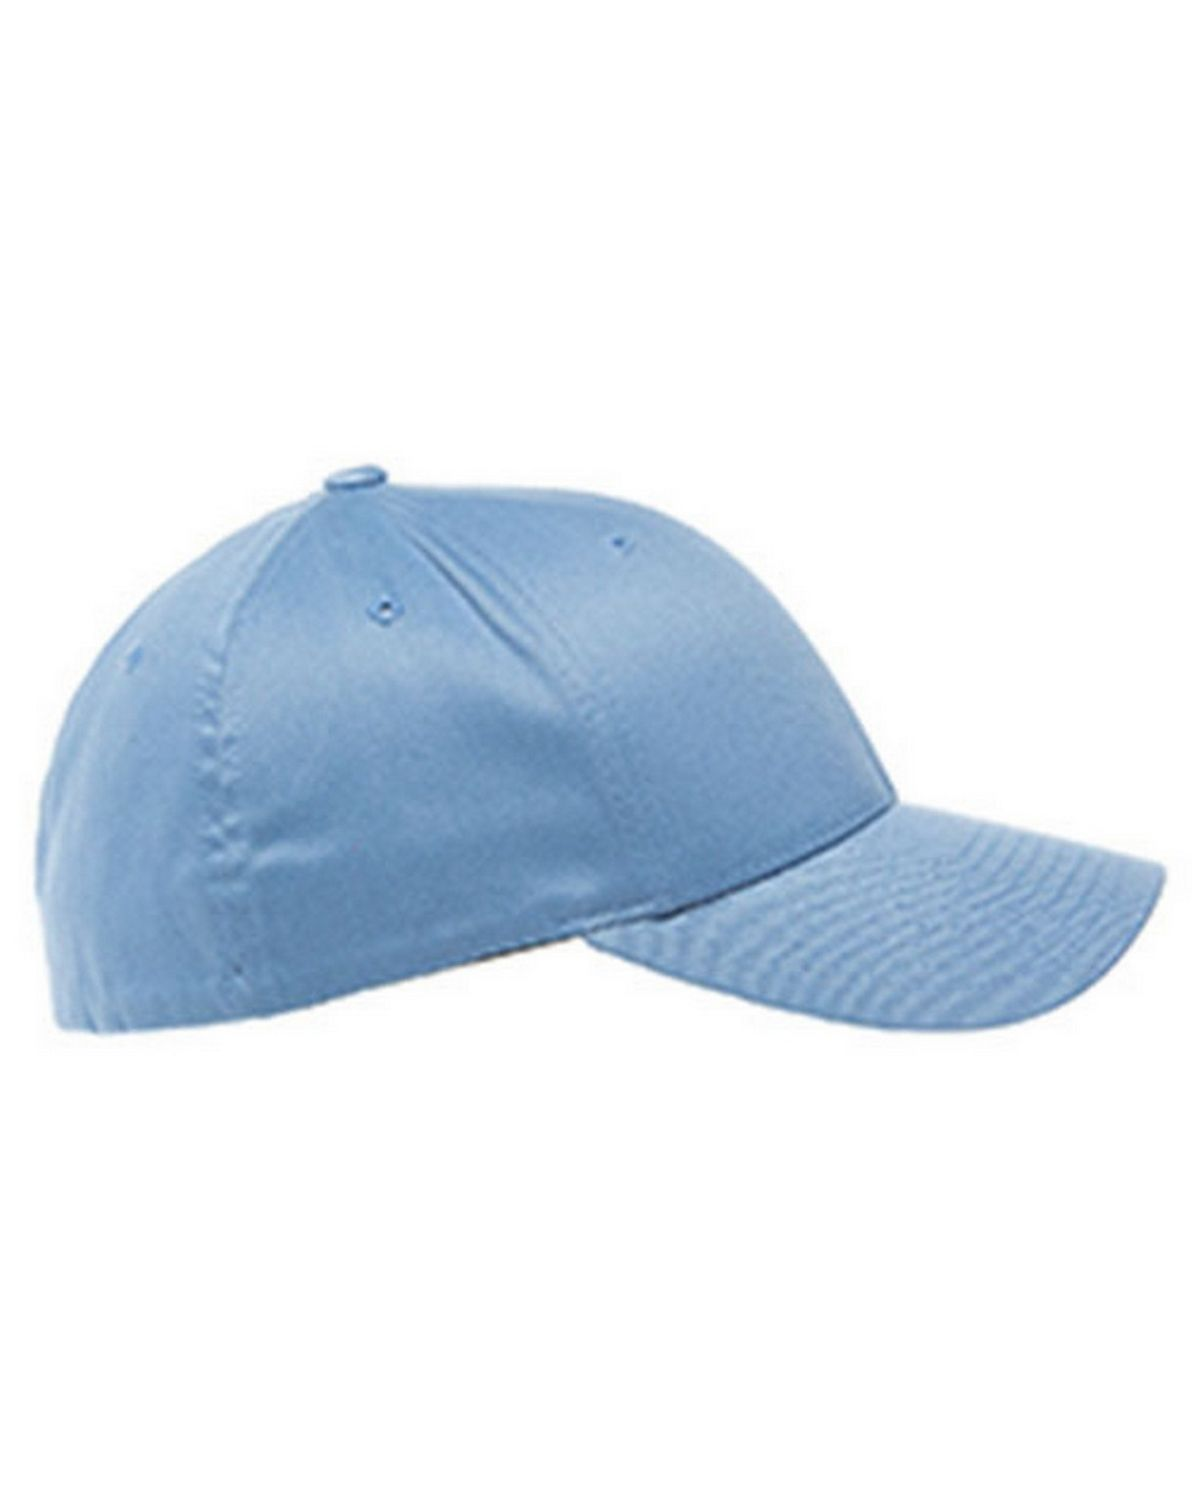 724c90eacb5 Flexfit 6590 Flexfit 100% Organic Brushed Twill Low-Profile Cap ...